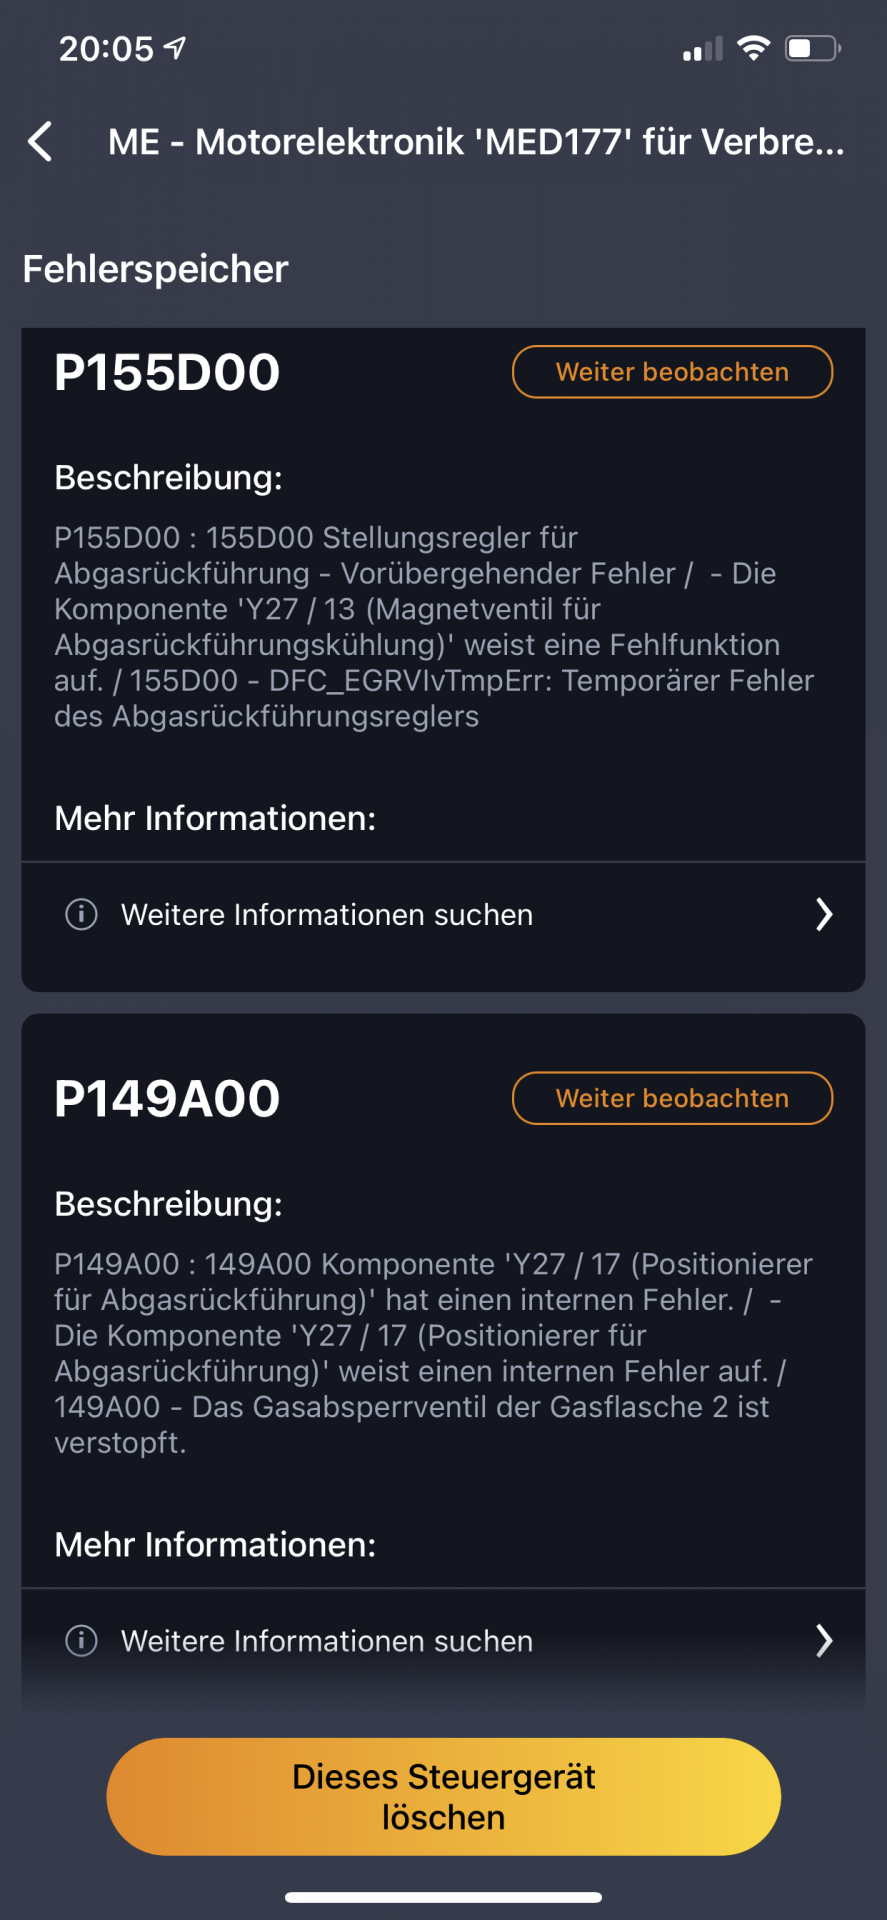 0DCAEF3A-E3D2-4E83-ADD3-F371AE085E97.png